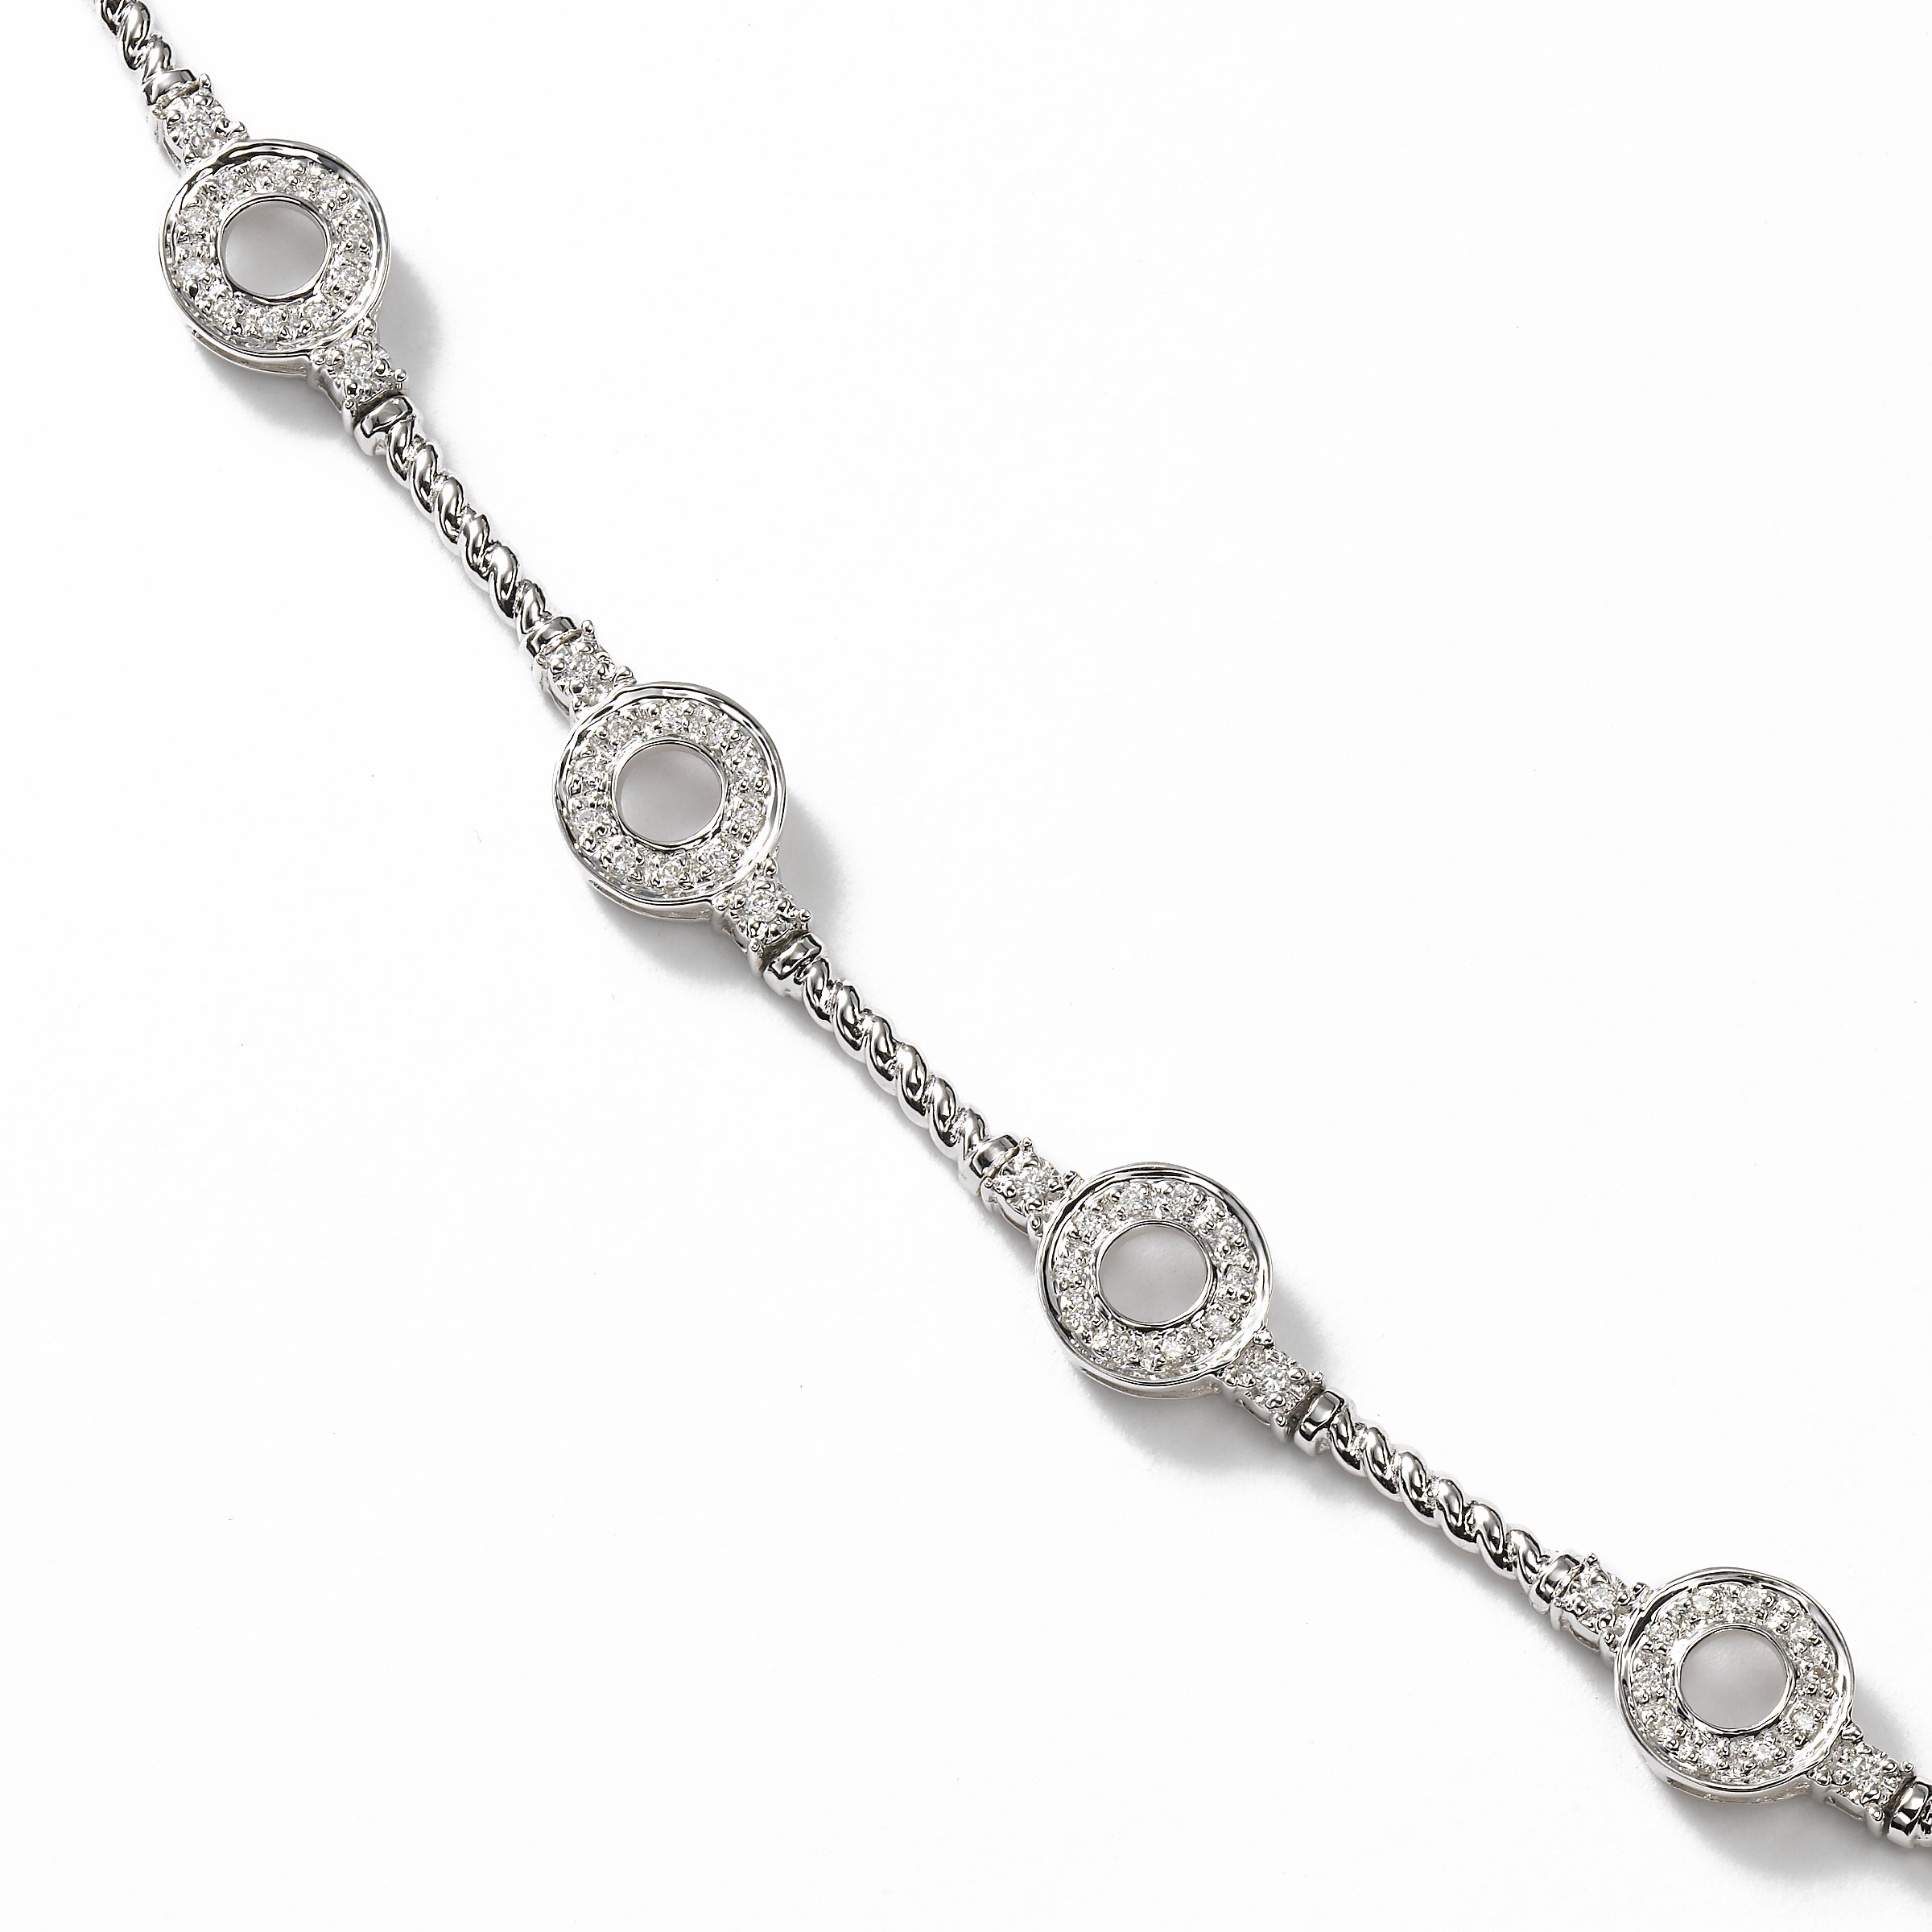 Flexible Diamond Bracelet with Rope Design, 14K White Gold